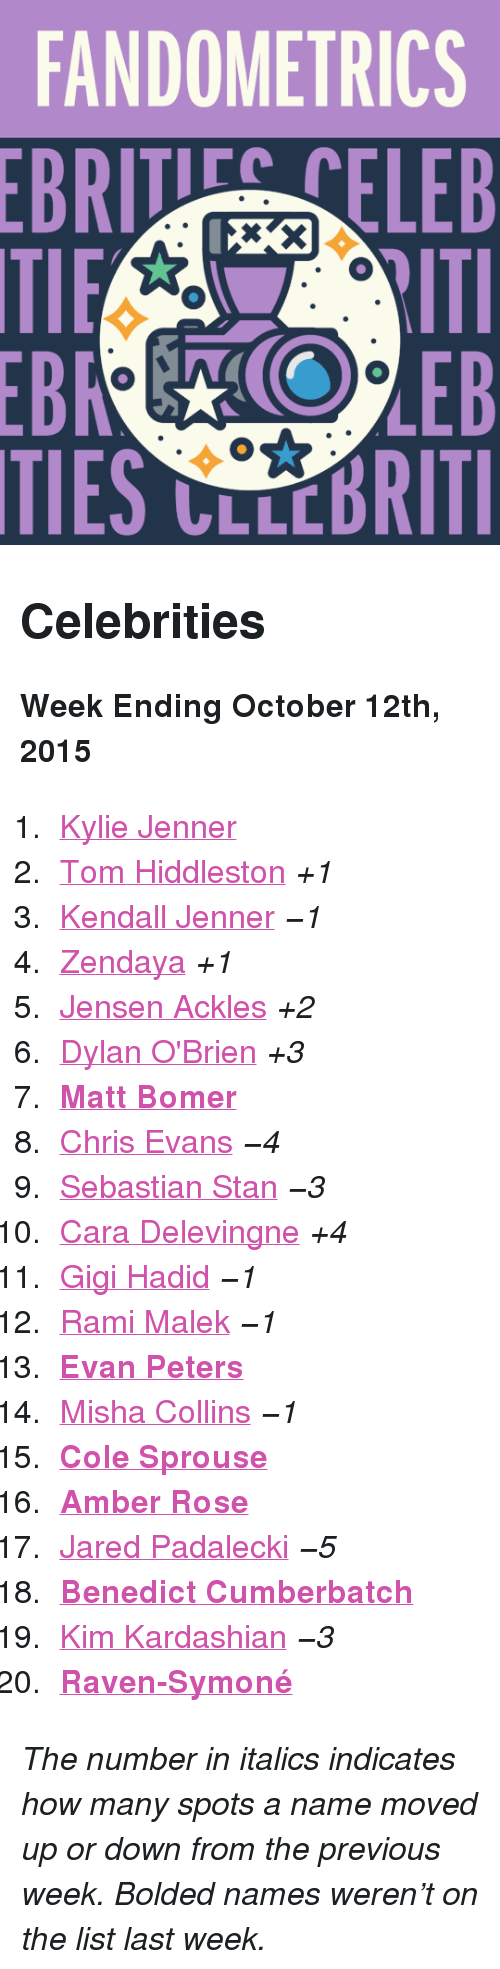 """Dylan O'Brien: FANDOMETRICS  BRTELEB  TIES CLLCBRITI <h2>Celebrities</h2><p><b>Week Ending October 12th, 2015</b></p><ol><li><a href=""""http://www.tumblr.com/search/kylie%20jenner"""">Kylie Jenner</a></li>  <li><a href=""""http://www.tumblr.com/search/tom%20hiddleston"""">Tom Hiddleston</a><i>+1</i></li>  <li><a href=""""http://www.tumblr.com/search/kendall%20jenner"""">Kendall Jenner</a><i>−1</i></li>  <li><a href=""""http://www.tumblr.com/search/zendaya"""">Zendaya</a><i>+1</i></li>  <li><a href=""""http://www.tumblr.com/search/jensen%20ackles"""">Jensen Ackles</a><i>+2</i></li>  <li><a href=""""http://www.tumblr.com/search/dylan%20o'brien"""">Dylan O'Brien</a><i>+3</i></li>  <li><a href=""""http://www.tumblr.com/search/matt%20bomer""""><b>Matt Bomer</b></a></li>  <li><a href=""""http://www.tumblr.com/search/chris%20evans"""">Chris Evans</a><i>−4</i></li>  <li><a href=""""http://www.tumblr.com/search/sebastian%20stan"""">Sebastian Stan</a><i>−3</i></li>  <li><a href=""""http://www.tumblr.com/search/cara%20delevingne"""">Cara Delevingne</a><i>+4</i></li>  <li><a href=""""http://www.tumblr.com/search/gigi%20hadid"""">Gigi Hadid</a><i>−1</i></li>  <li><a href=""""http://www.tumblr.com/search/rami%20malek"""">Rami Malek</a><i>−1</i></li>  <li><a href=""""http://www.tumblr.com/search/evan%20peters""""><b>Evan Peters</b></a></li>  <li><a href=""""http://www.tumblr.com/search/misha%20collins"""">Misha Collins</a><i>−1</i></li>  <li><a href=""""http://www.tumblr.com/search/cole%20sprouse""""><b>Cole Sprouse</b></a></li>  <li><a href=""""http://www.tumblr.com/search/amber%20rose""""><b>Amber Rose</b></a></li>  <li><a href=""""http://www.tumblr.com/search/jared%20padalecki"""">Jared Padalecki</a><i>−5</i></li>  <li><a href=""""http://www.tumblr.com/search/benedict%20cumberbatch""""><b>Benedict Cumberbatch</b></a></li>  <li><a href=""""http://www.tumblr.com/search/kim%20kardashian"""">Kim Kardashian</a><i>−3</i></li>  <li><a href=""""http://www.tumblr.com/search/raven%20symone""""><b>Raven-Symoné</b></a></li></ol><p><i>The number in italics indicates how many spots a name moved up or down fr"""